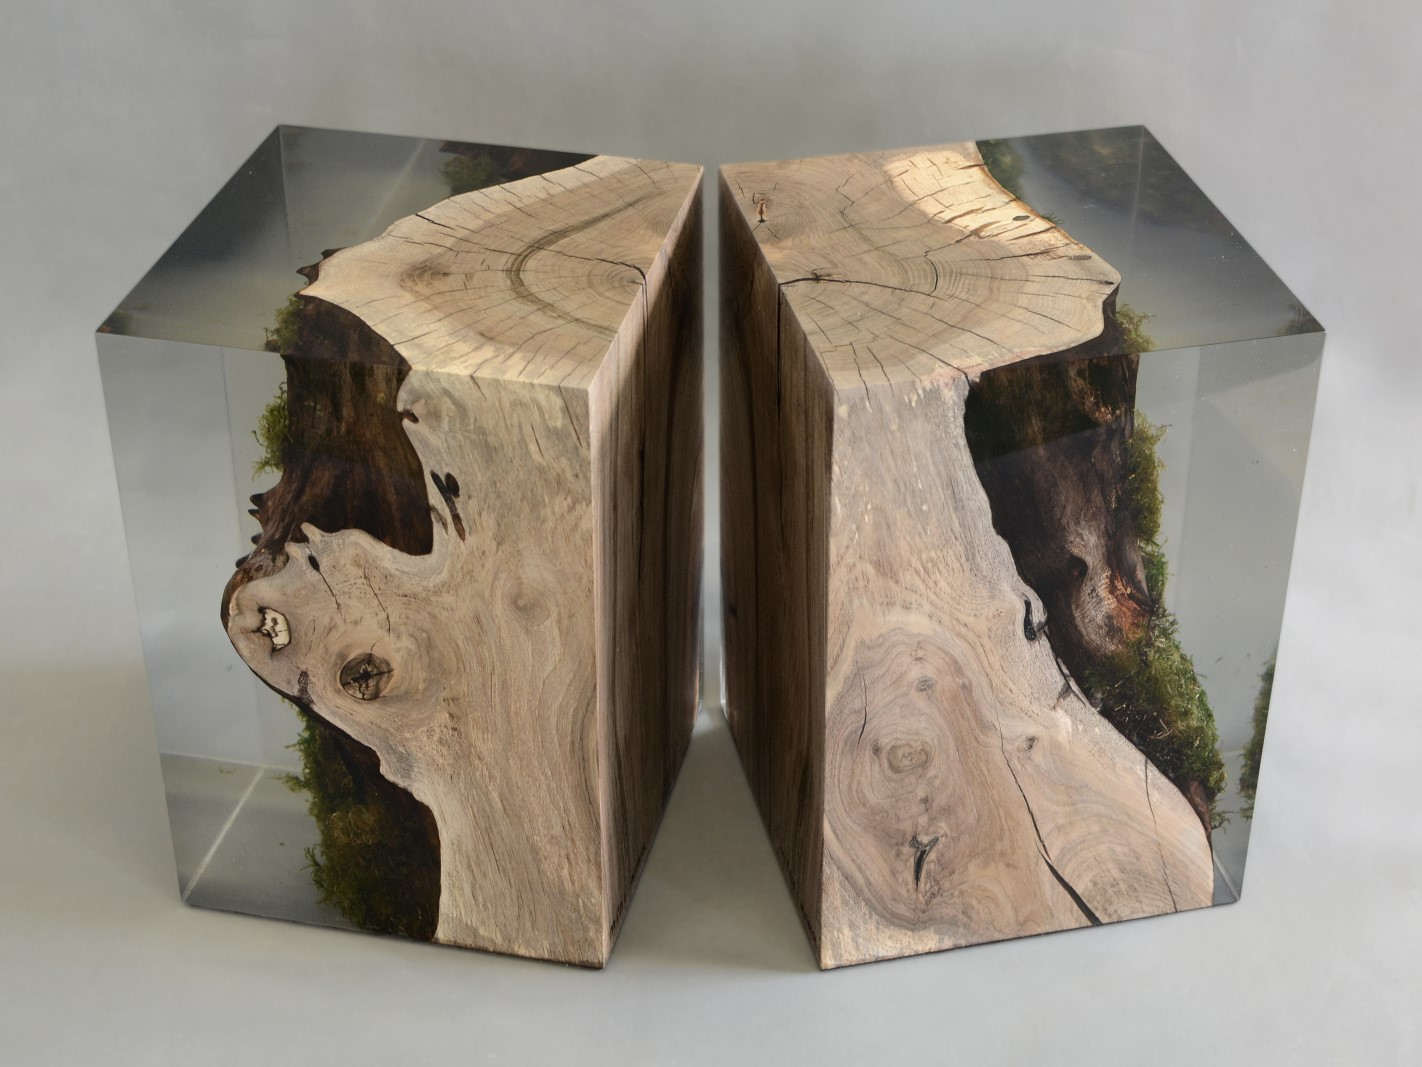 alcarol_stump stool walnut 2018_7